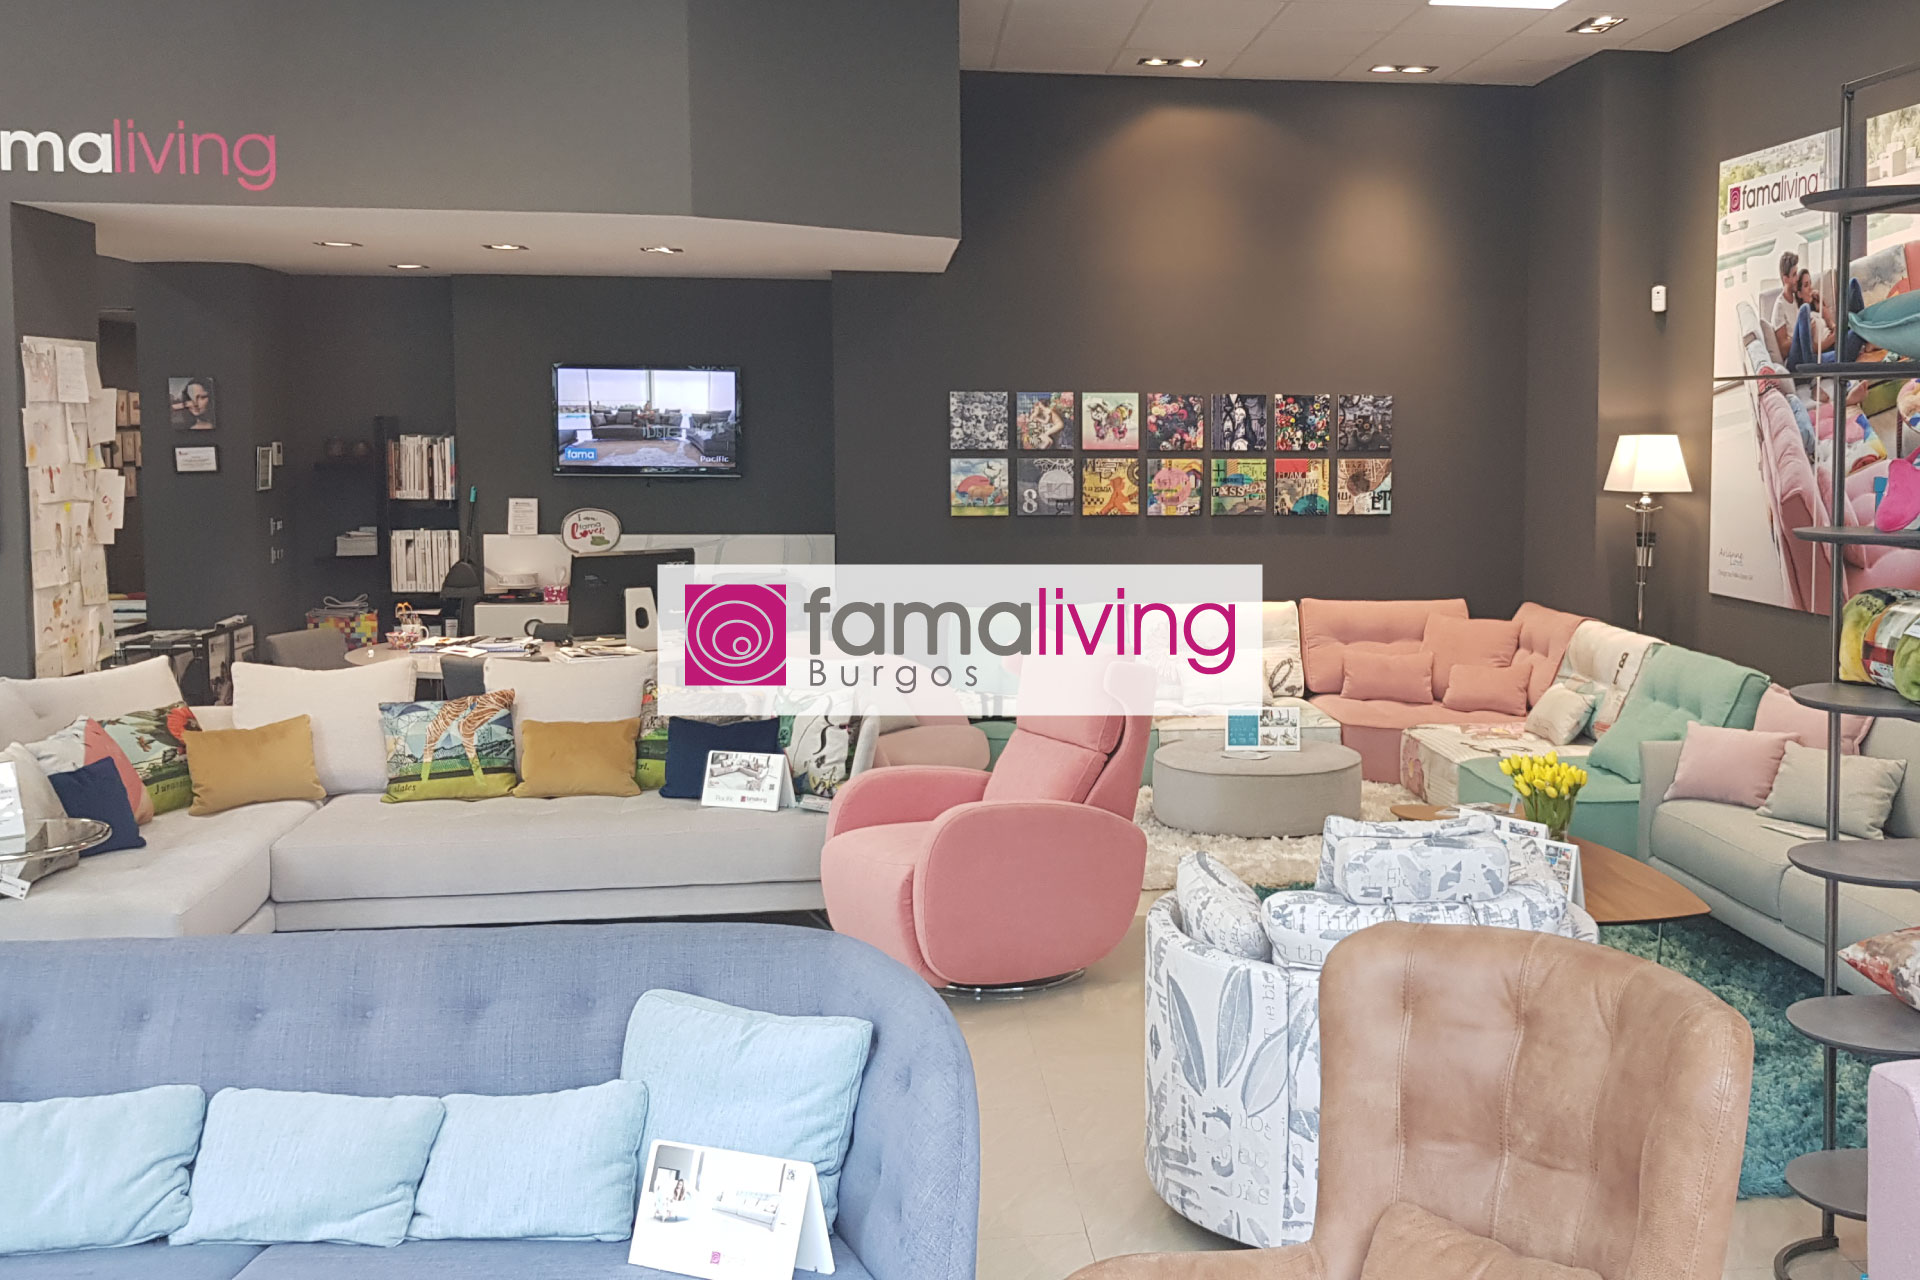 https://www.famaliving.com/burgos-en